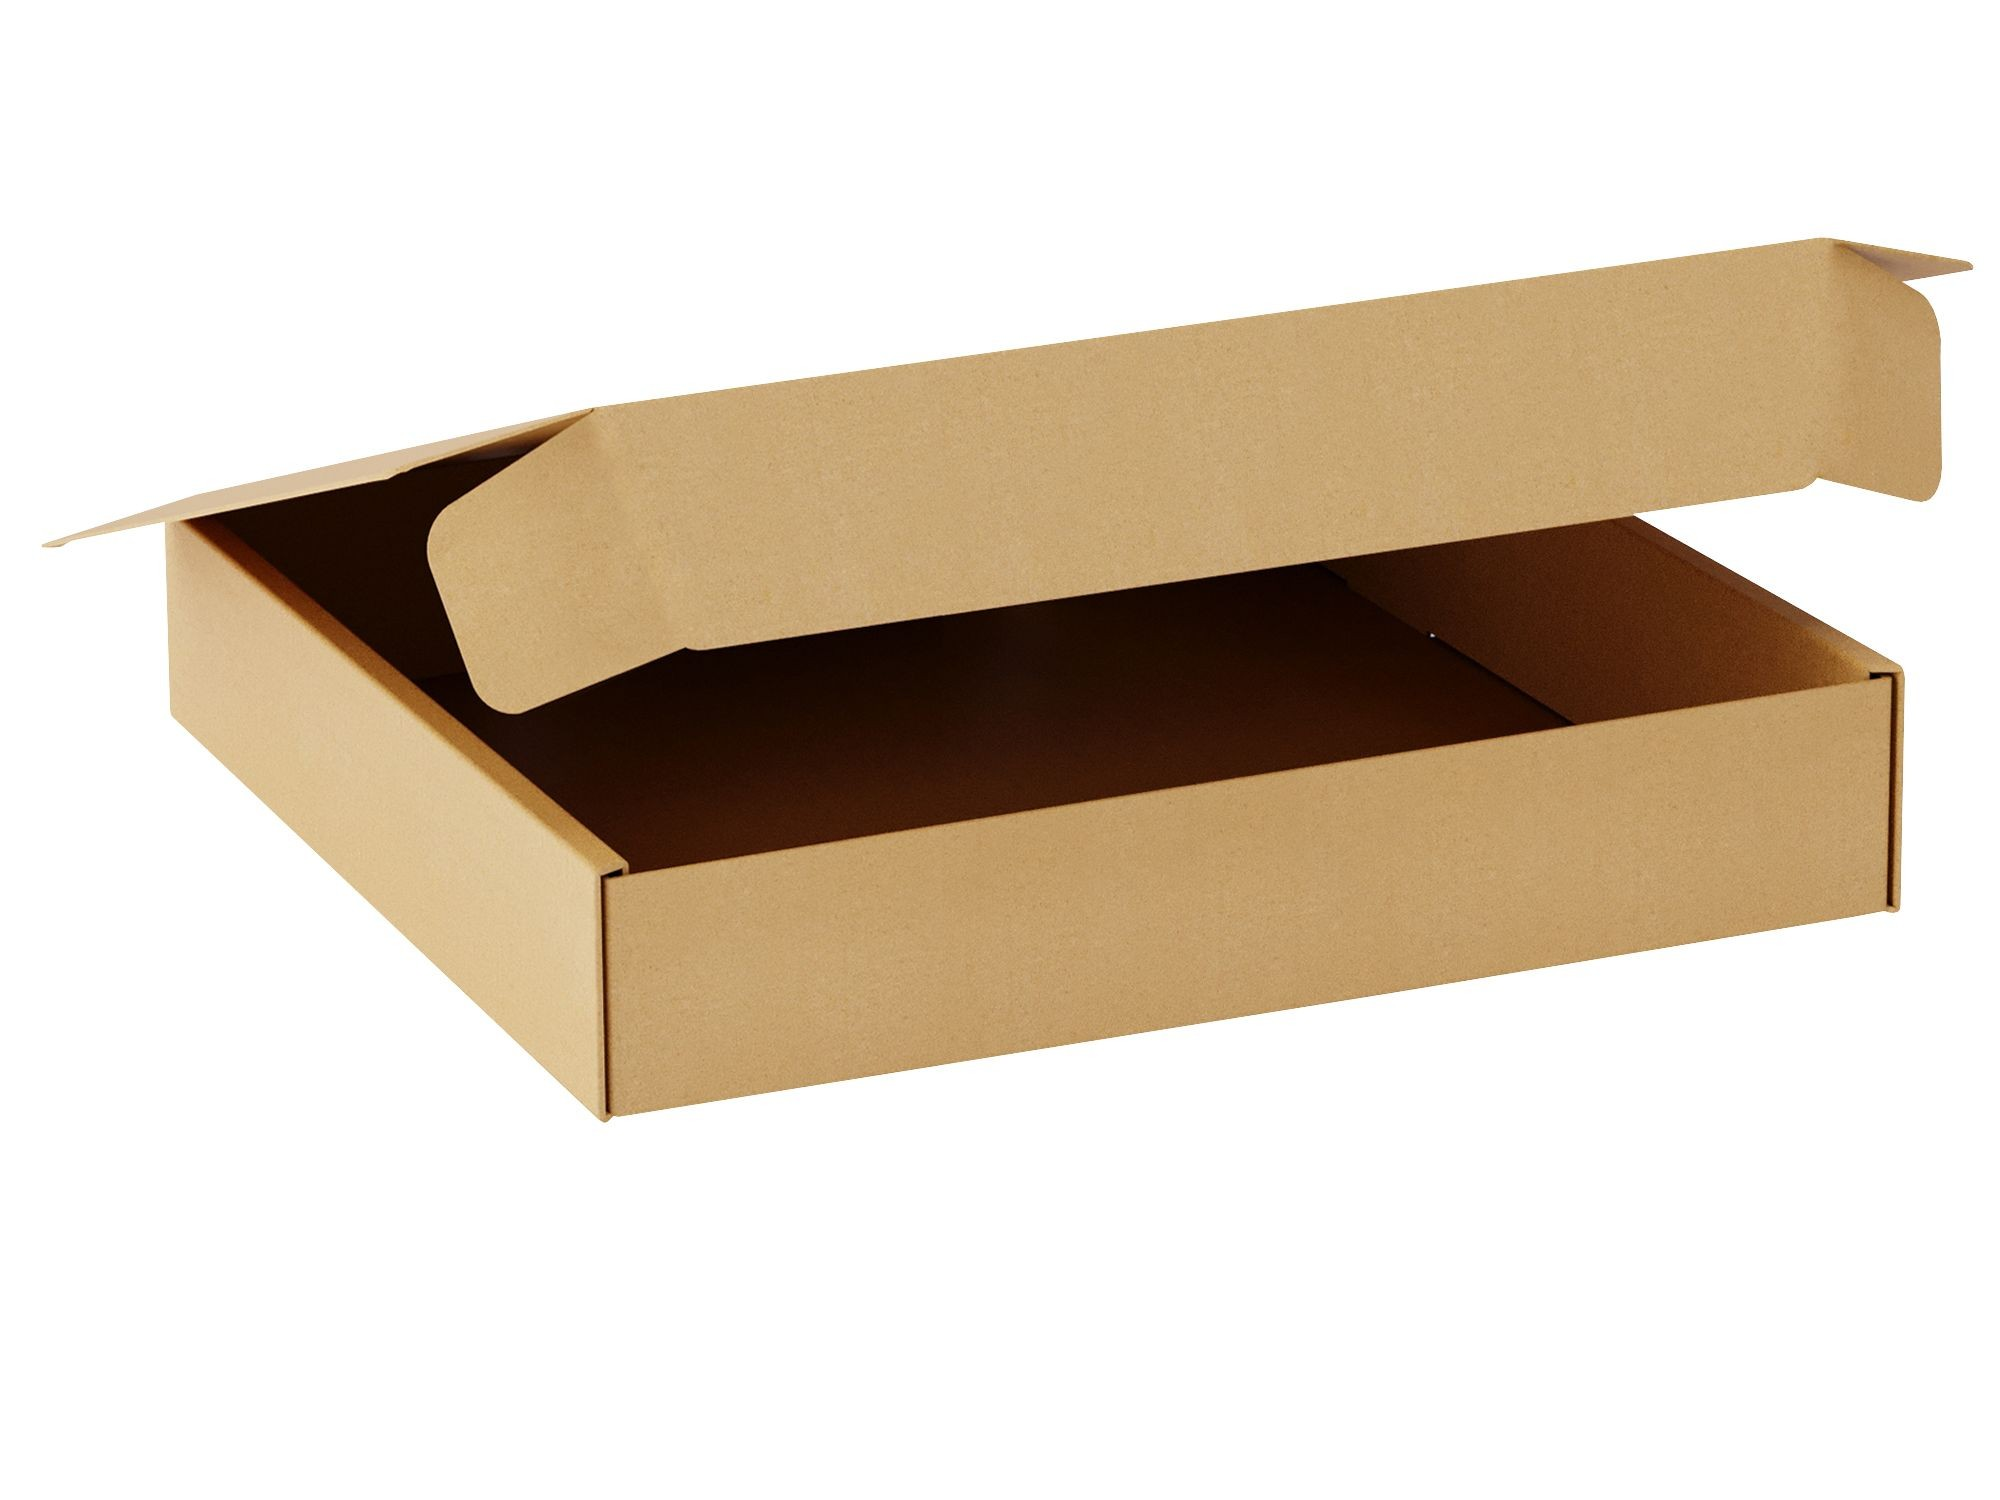 "TOTALPACK® 15 1/2 x 13 1/2 x 3"" Single Wall Corrugated Boxes ""Interlock Die-Cut"" 25 Units"